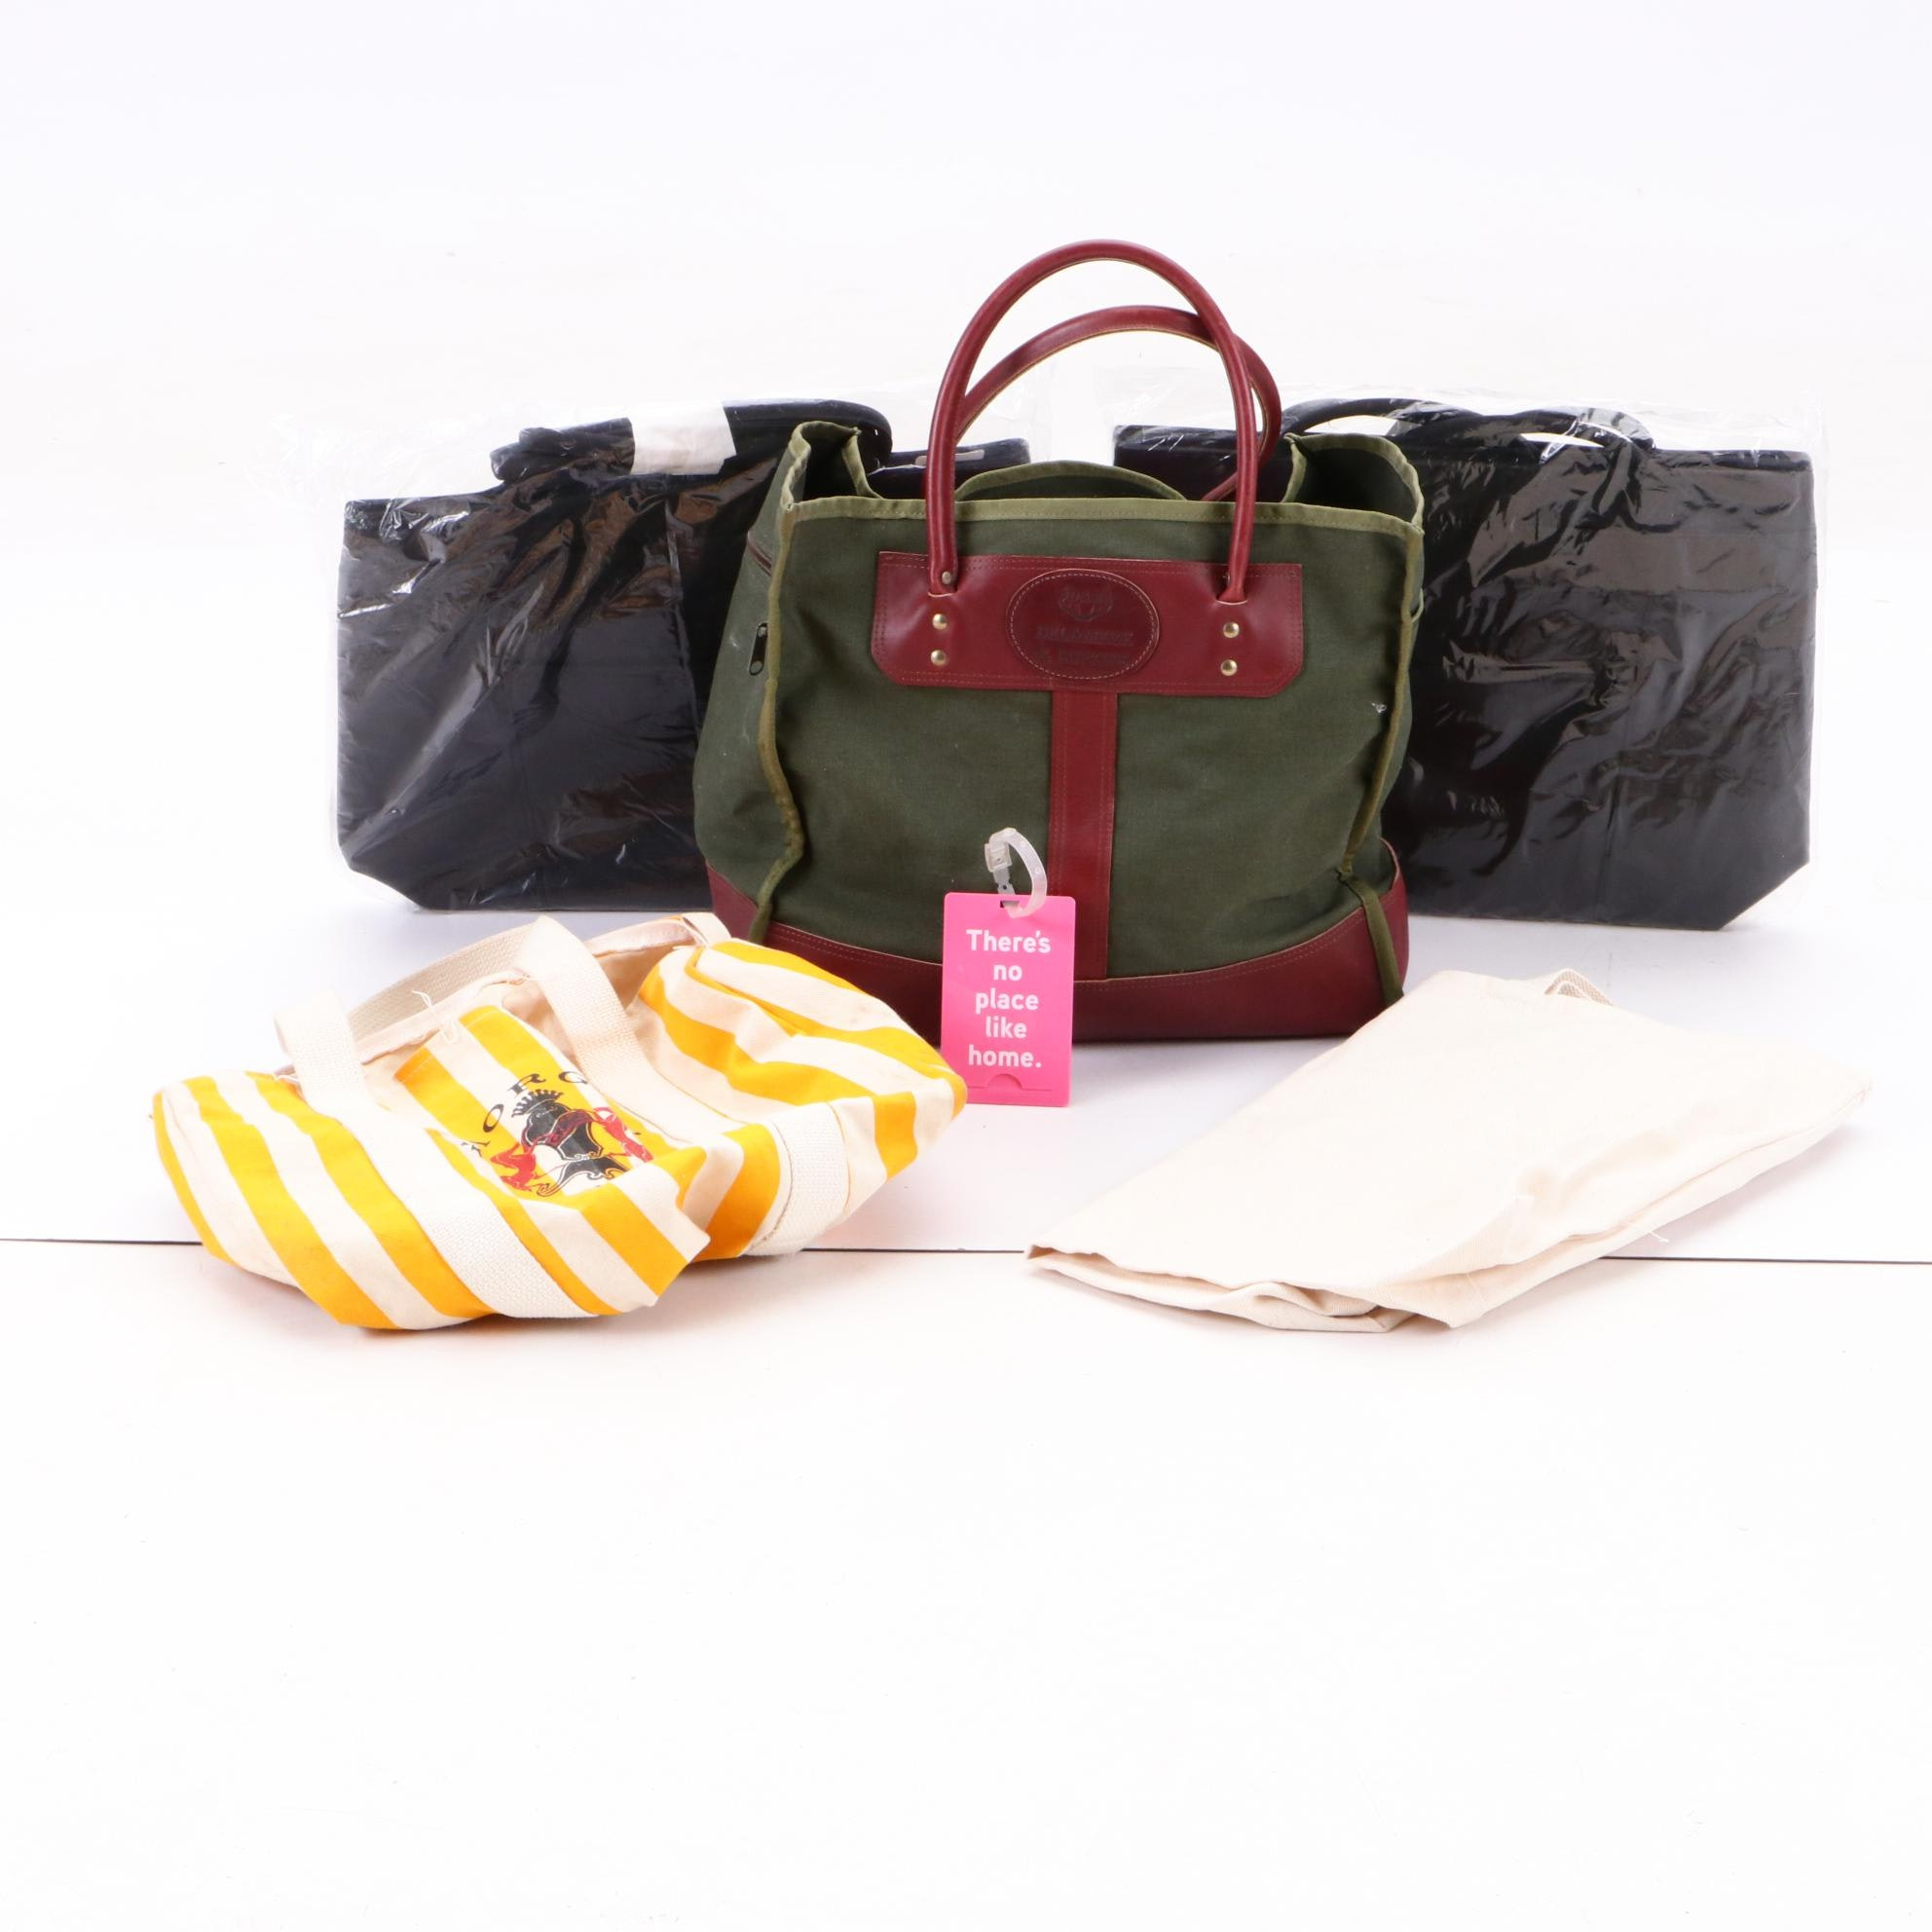 Delamere & Hopkins Canvas and Leather Tote and Other Bags